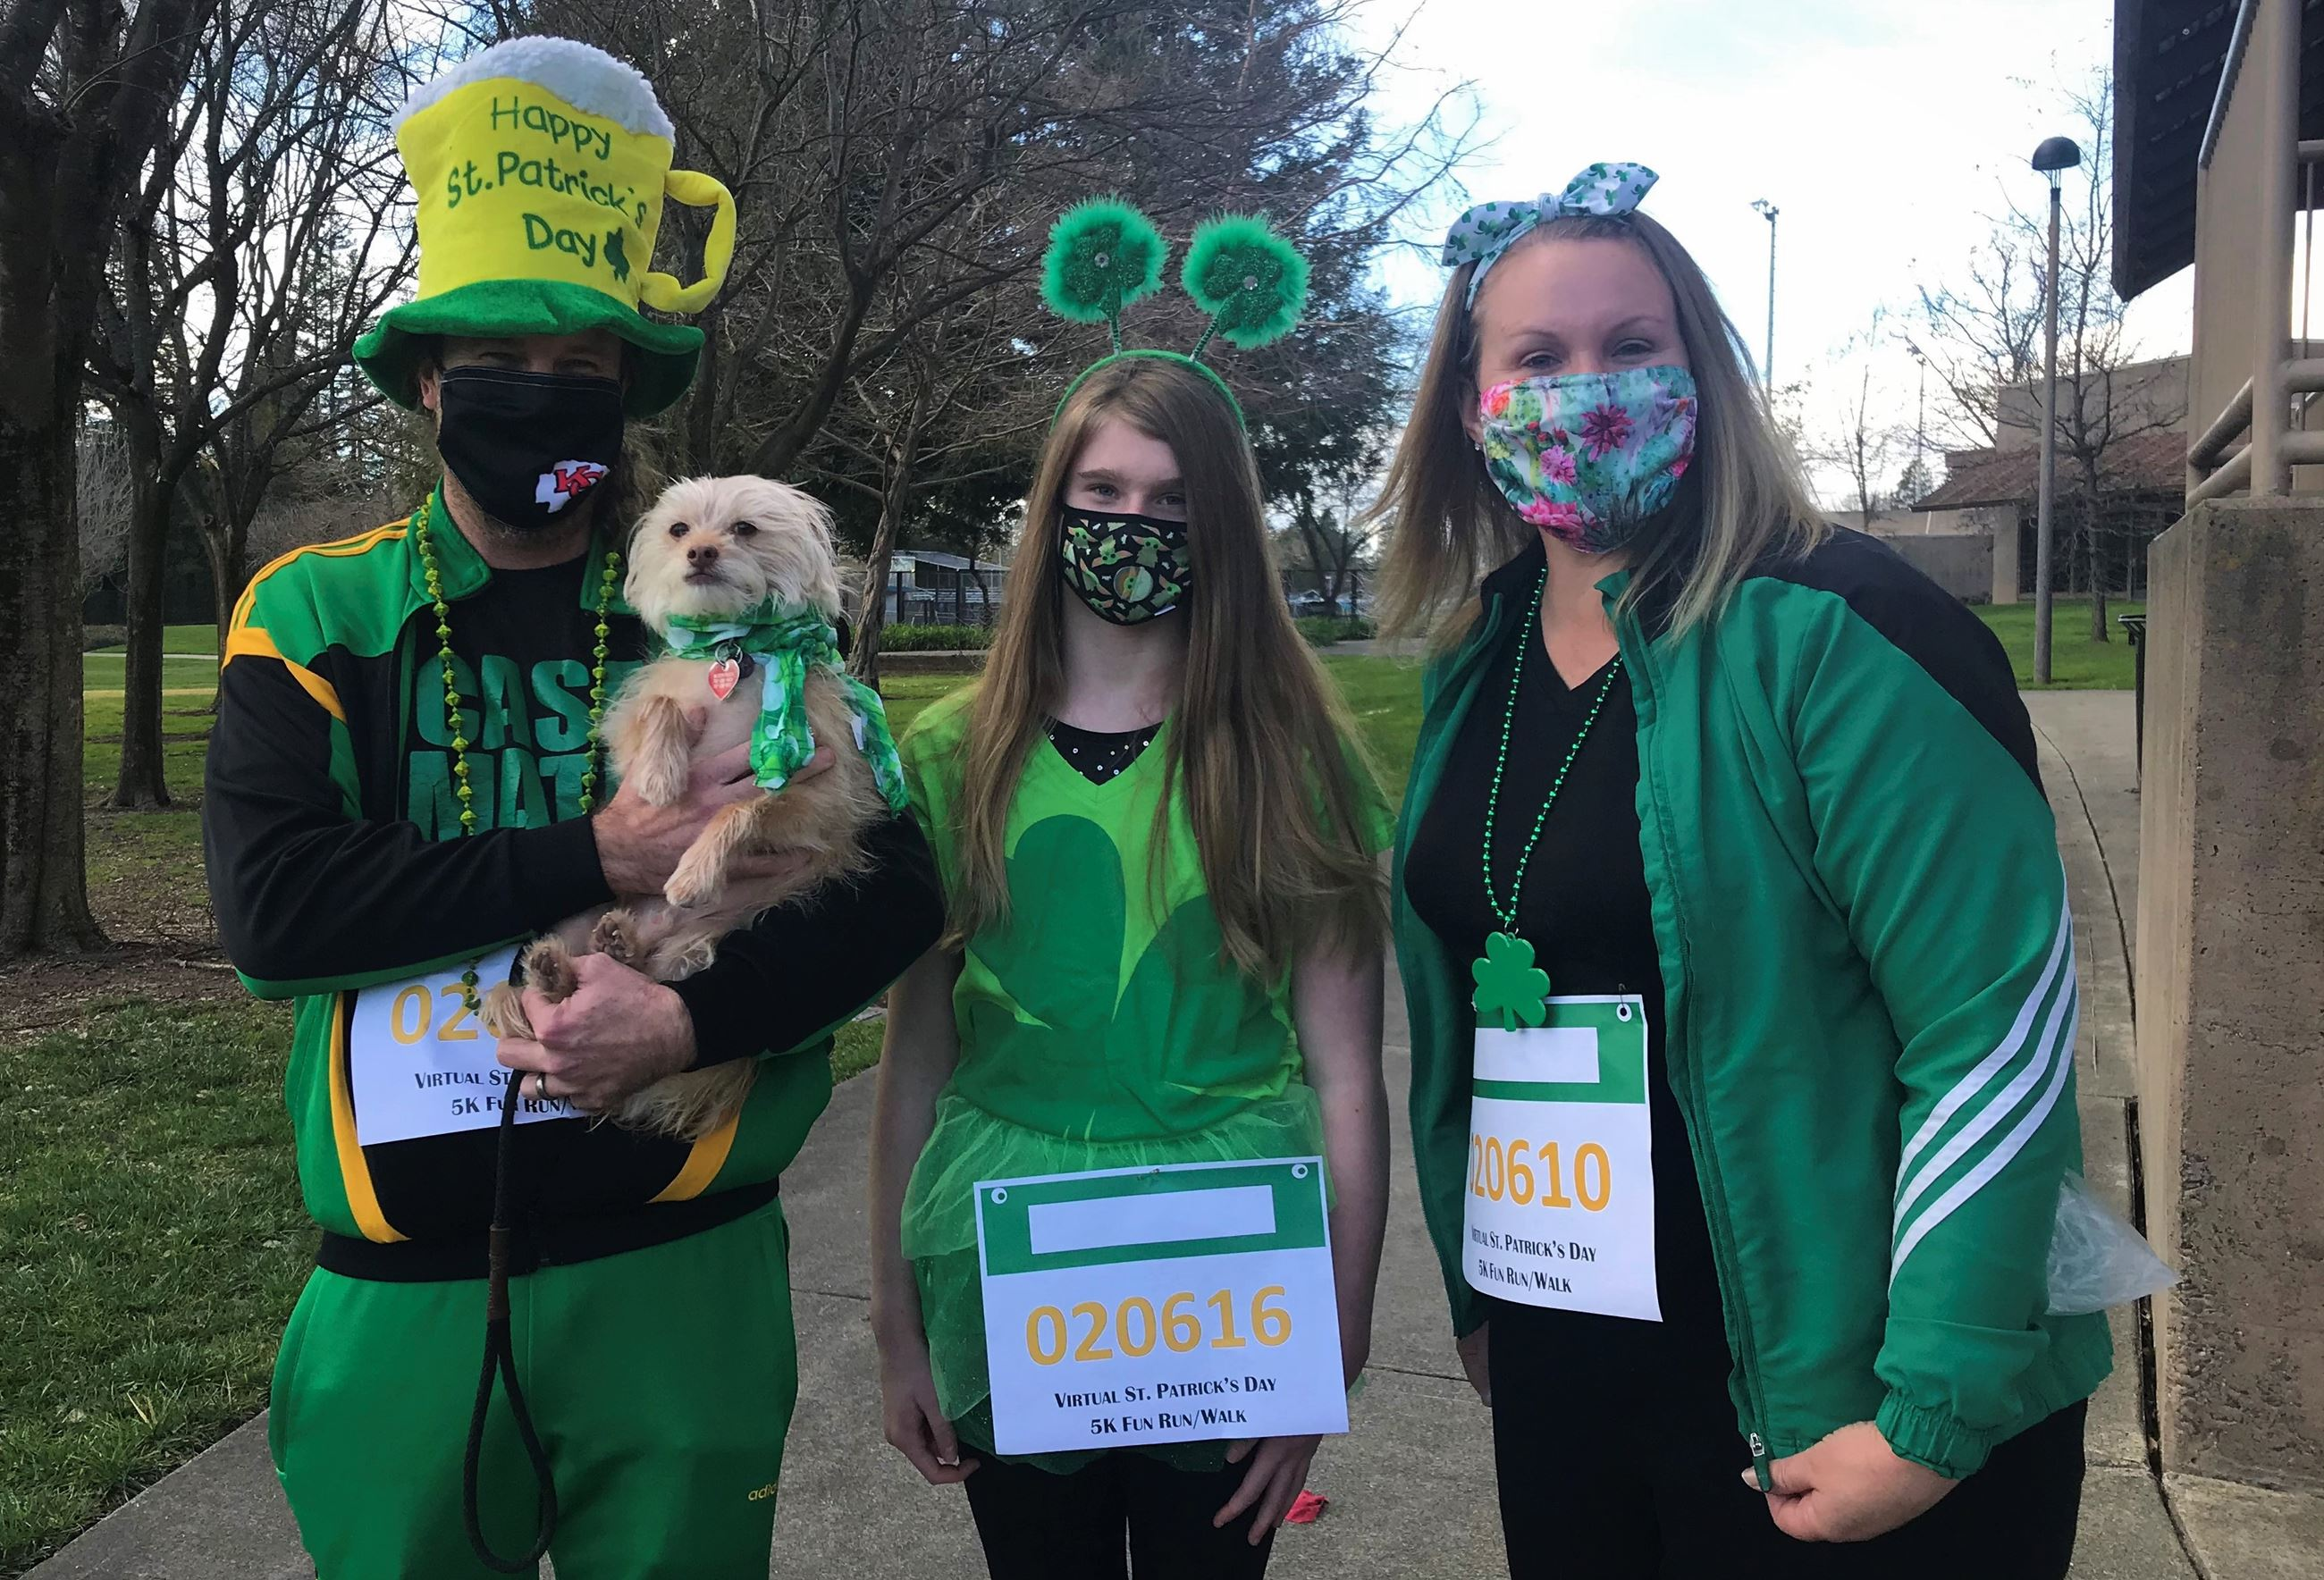 Family and dog dressed up in St. Patrick's gear